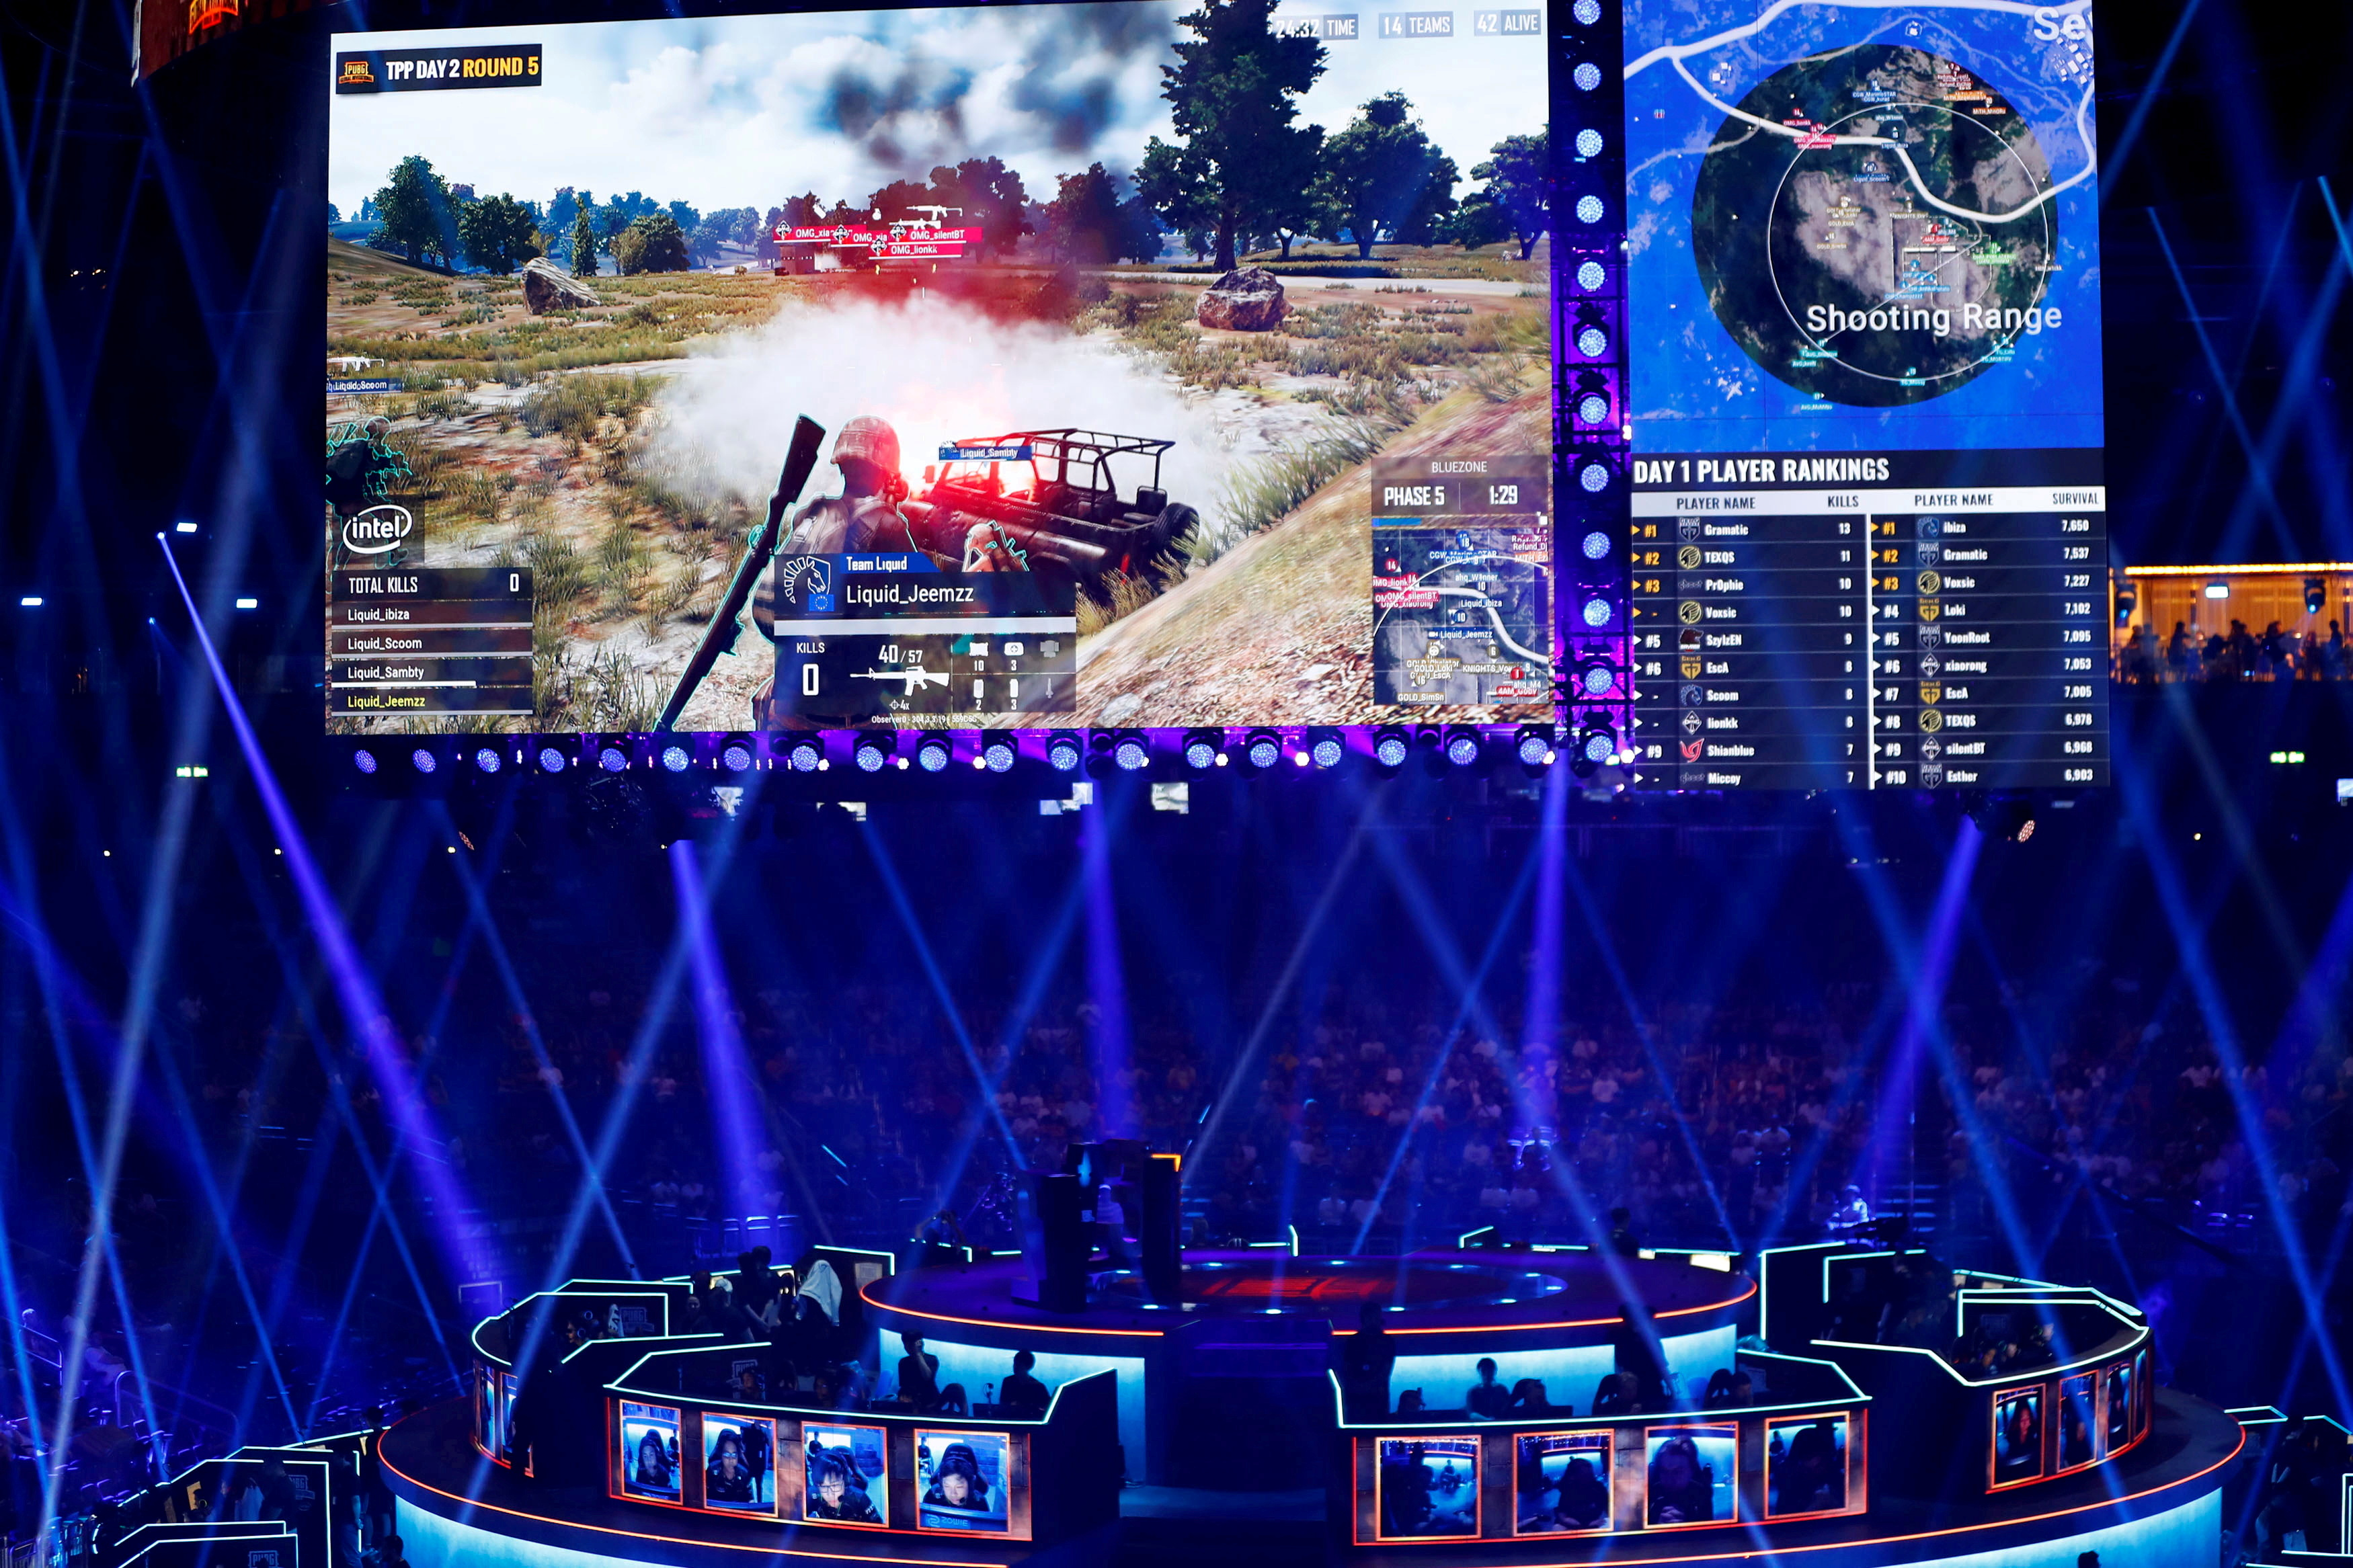 Players are pictured as they attend the PUBG Global Invitational 2018, the first official esports tournament for the computer game PlayerUnknown's Battlegrounds in Berlin, Germany, July 26, 2018.  REUTERS/Fabrizio Bensch